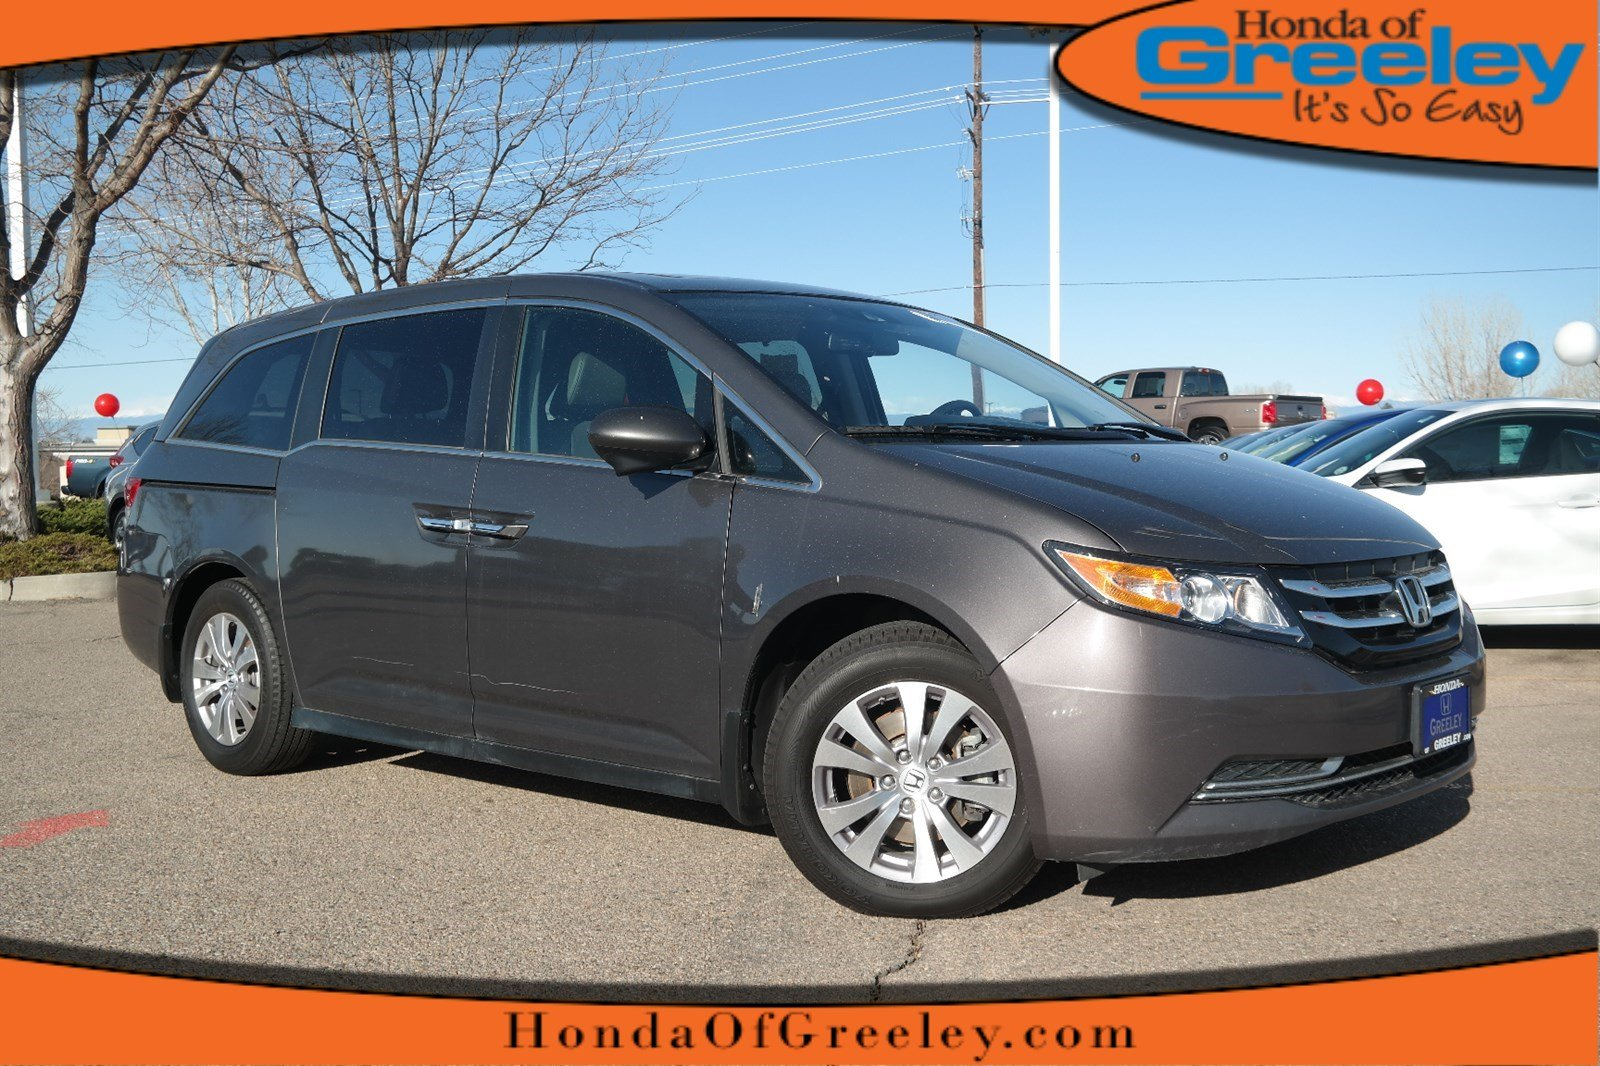 Photo Pre-Owned 2015 Honda Odyssey EX-L Front Wheel Drive Mini-van, Passenger For Sale in Greeley, Loveland, Windsor, Fort Collins, Longmont, Colorado